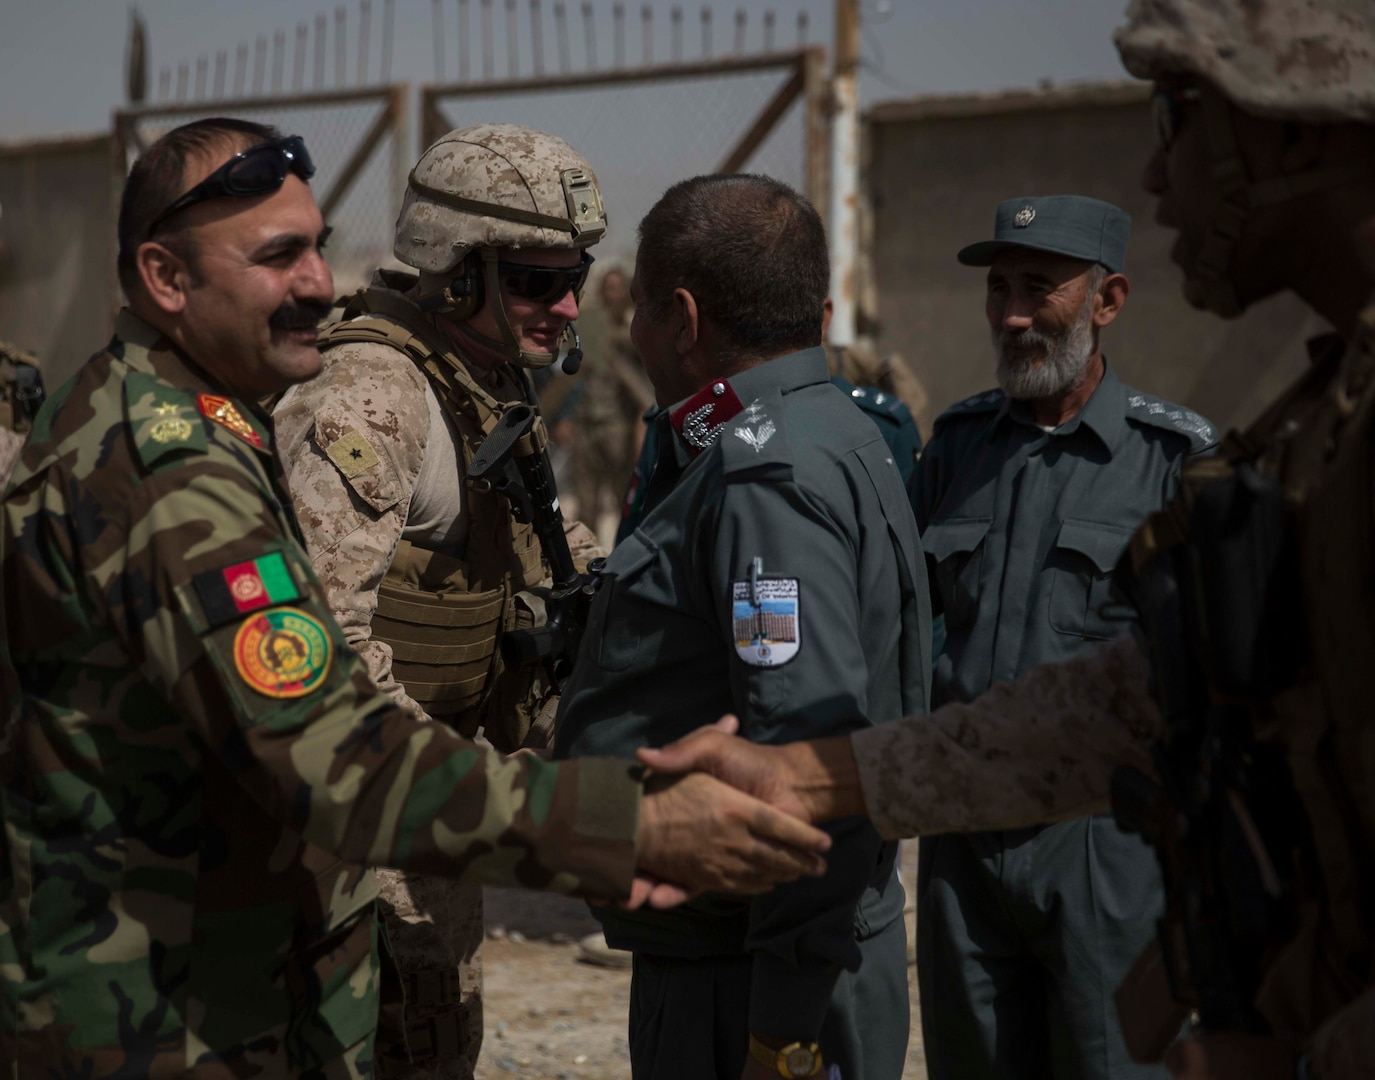 Brig. Gen Roger Turner, second from left, the commanding general of Task Force Southwest, and Col. David Gibbs, right, the commanding officer for team police, Task Force Southwest, greet their Afghan National Defense and Security Force partners after arriving at the Helmand Provincial Police Headquarters in Lashkar Gah, Afghanistan, July 9, 2017. This mission provided an opportunity for advisors to meet with their counterparts, review the security posture at the PHQ and ensure that Afghan National Defense and Security Forces have an effective defense of Lashkar Gah. (U.S. Marine Corps photo by Sgt. Justin T. Updegraff)